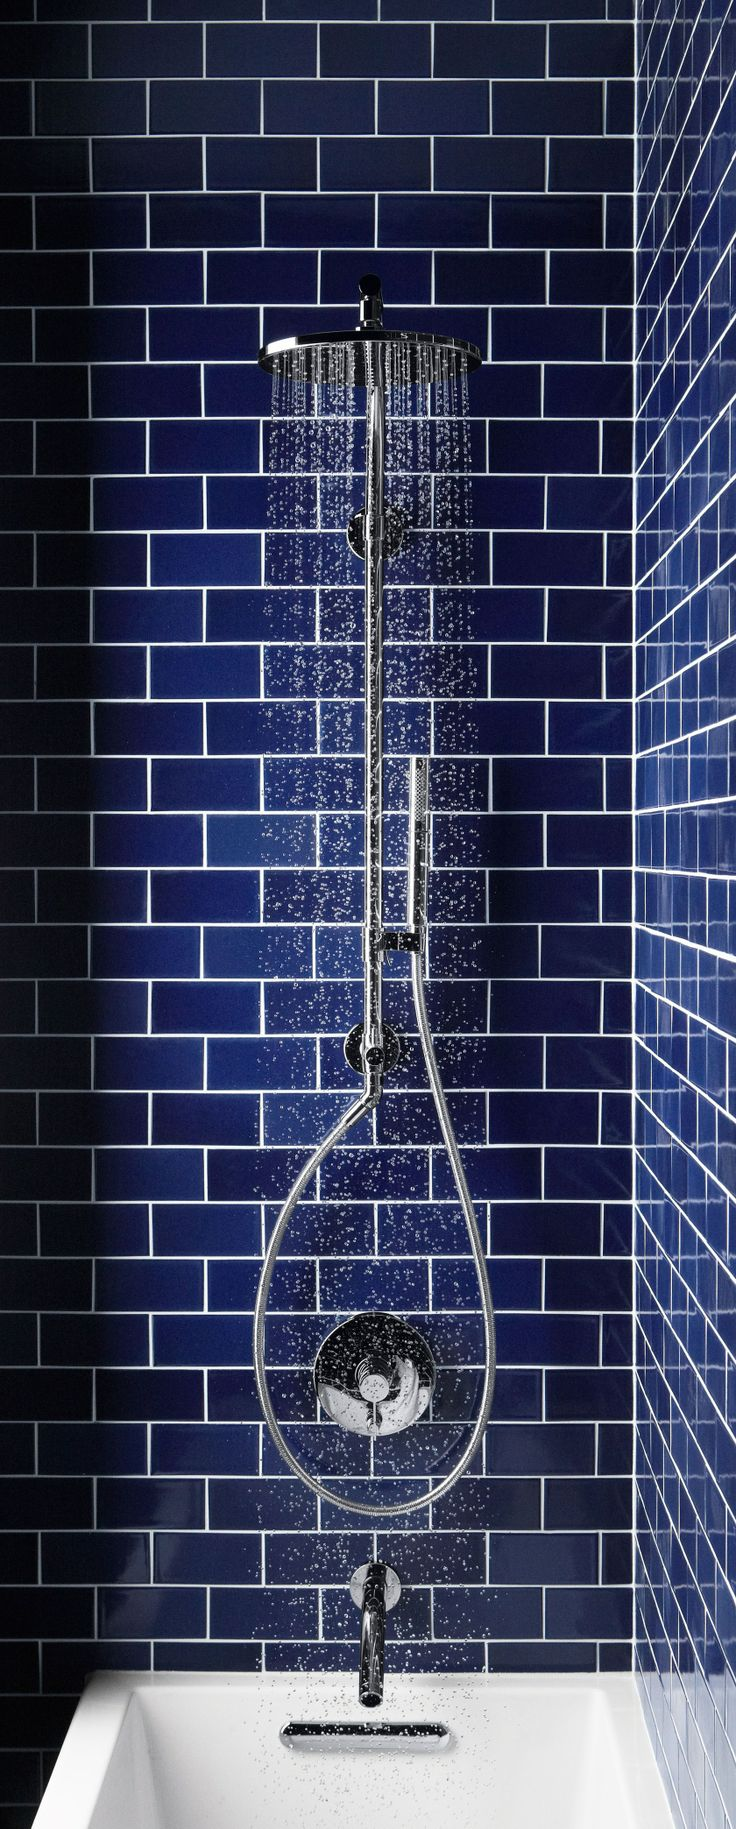 Brilliant  Blue Metro Kitchenbathroom Tiles X 112  Lights Tile And Light Blue